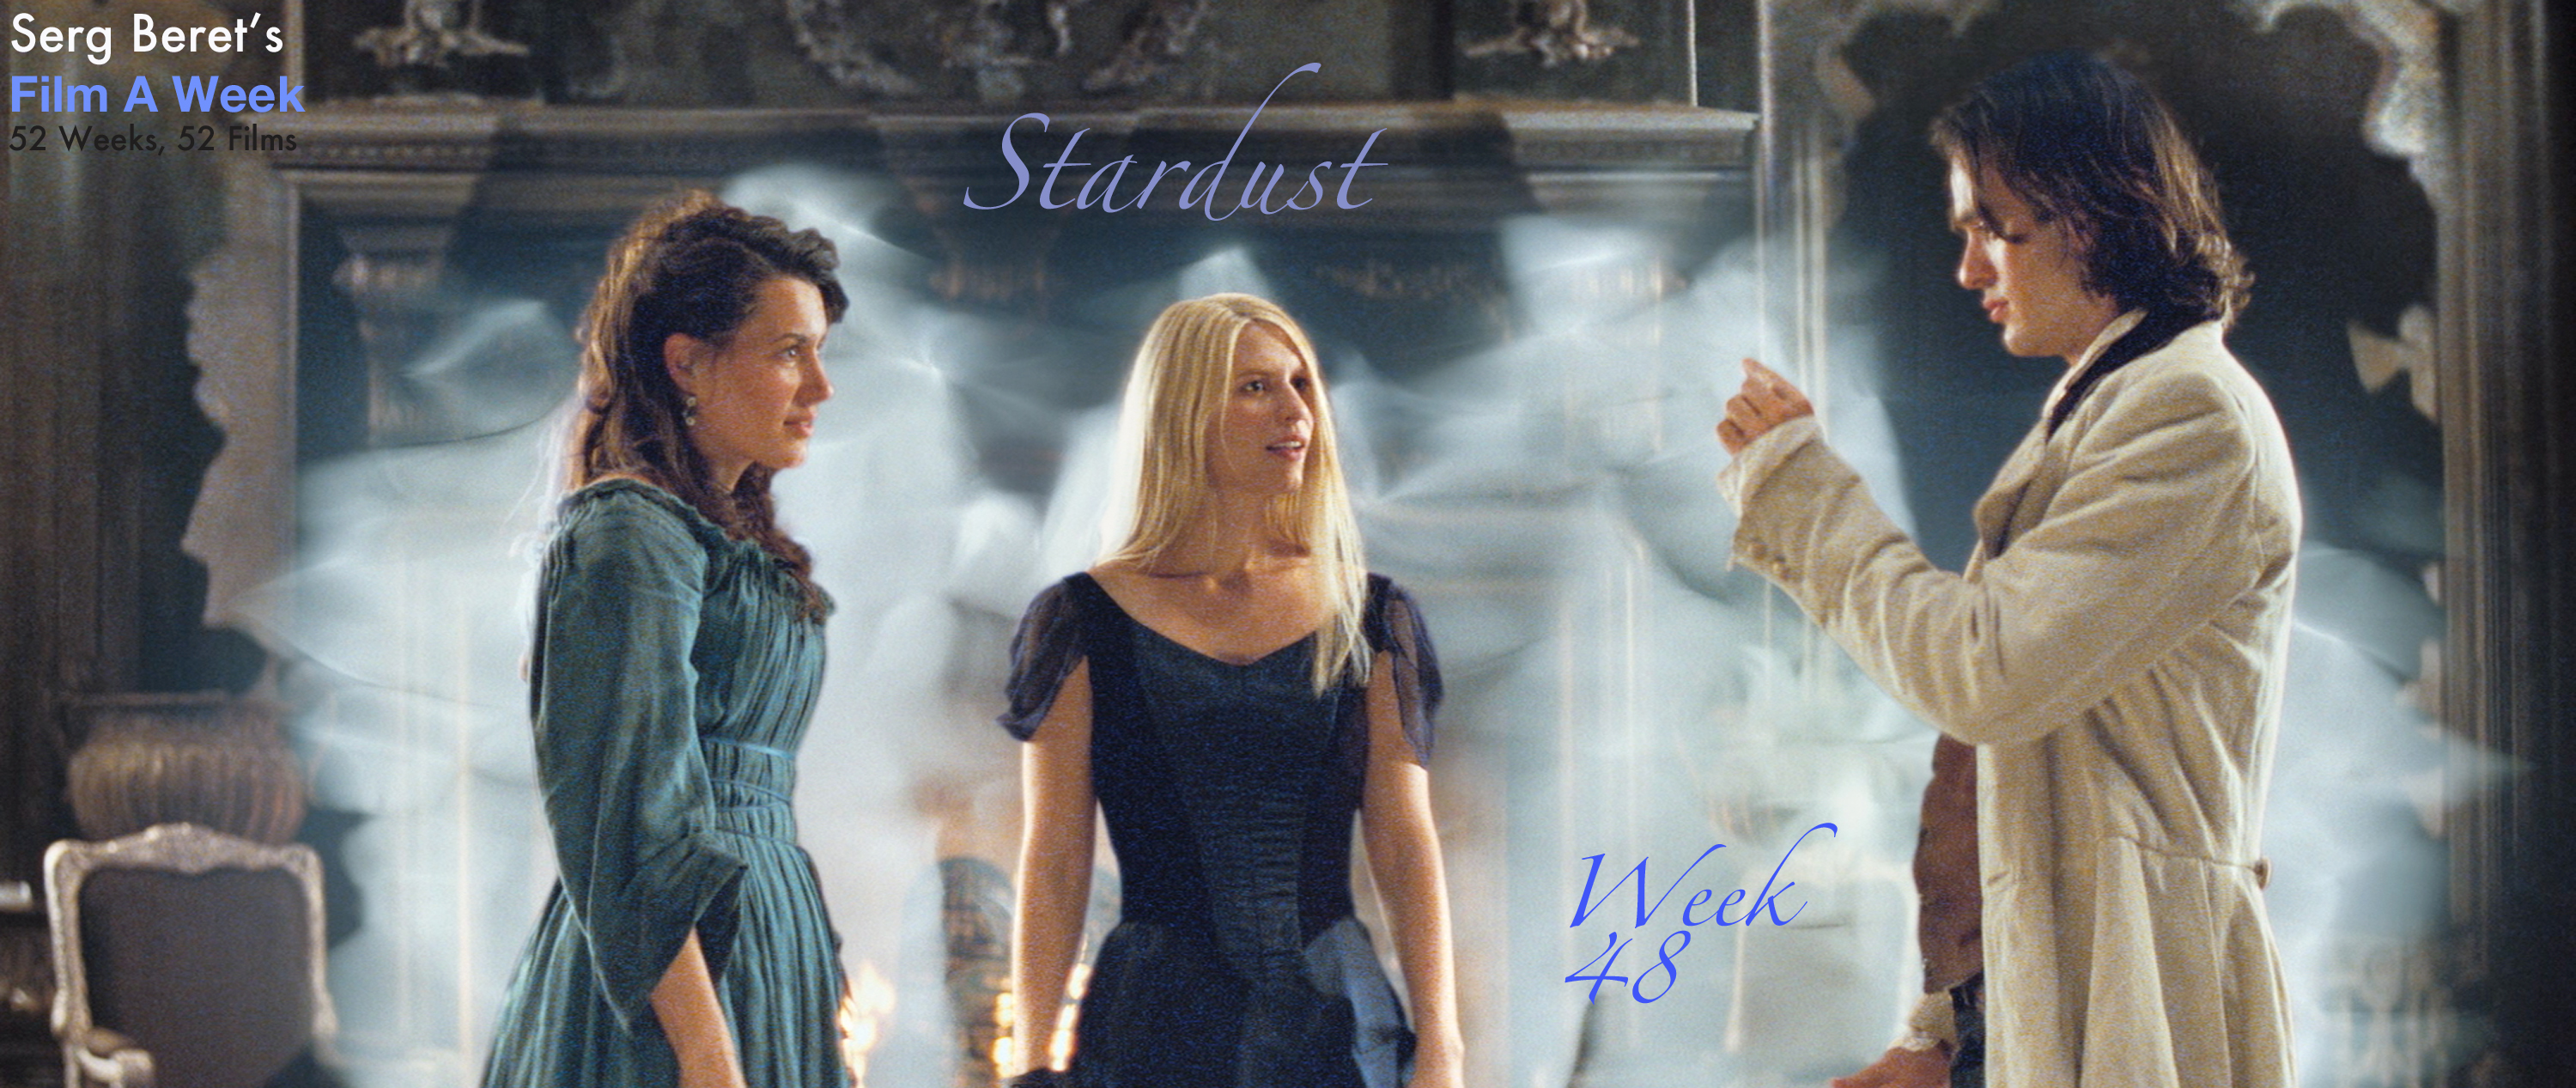 Film A Week 48: Stardust (2007) - Thisfunktional